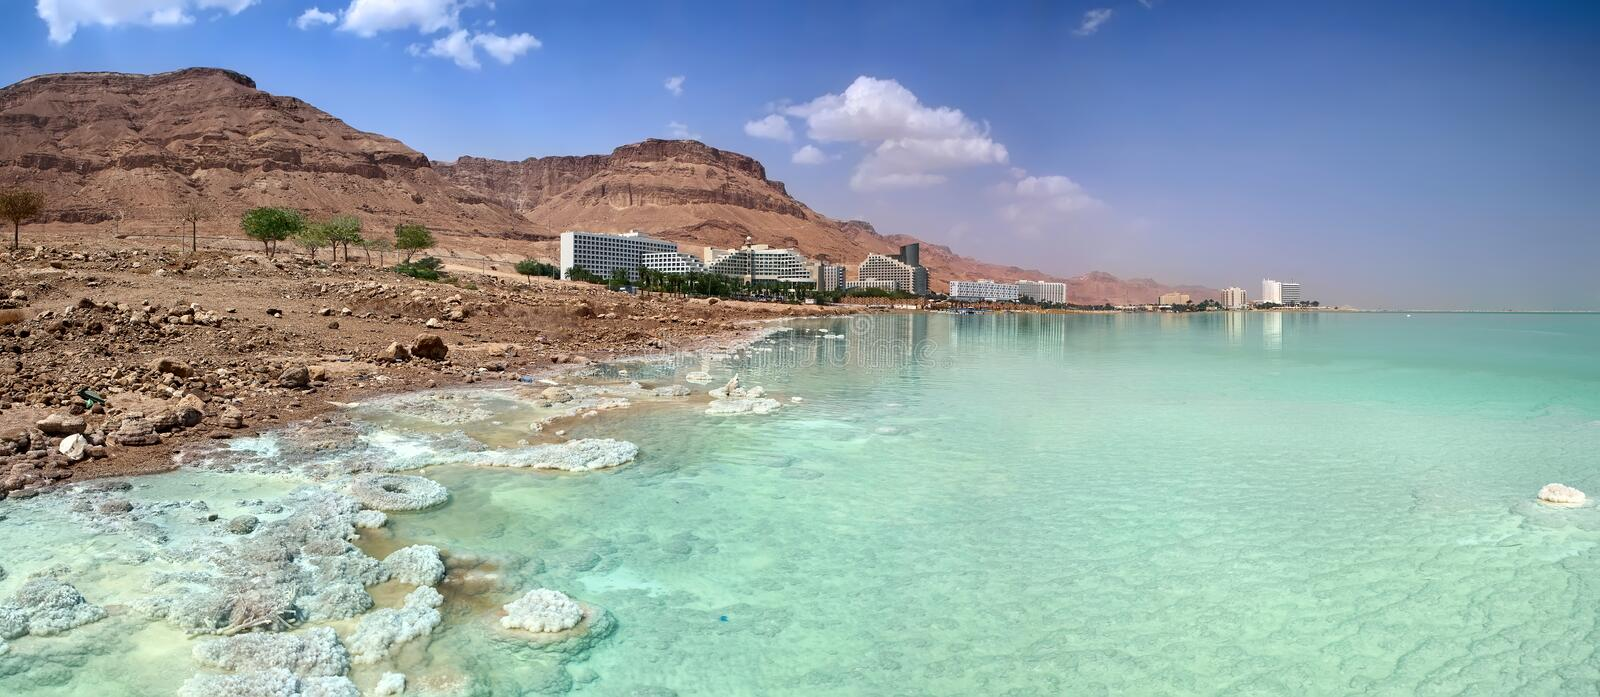 Dead Sea coast. Hotels. Israel royalty free stock photos